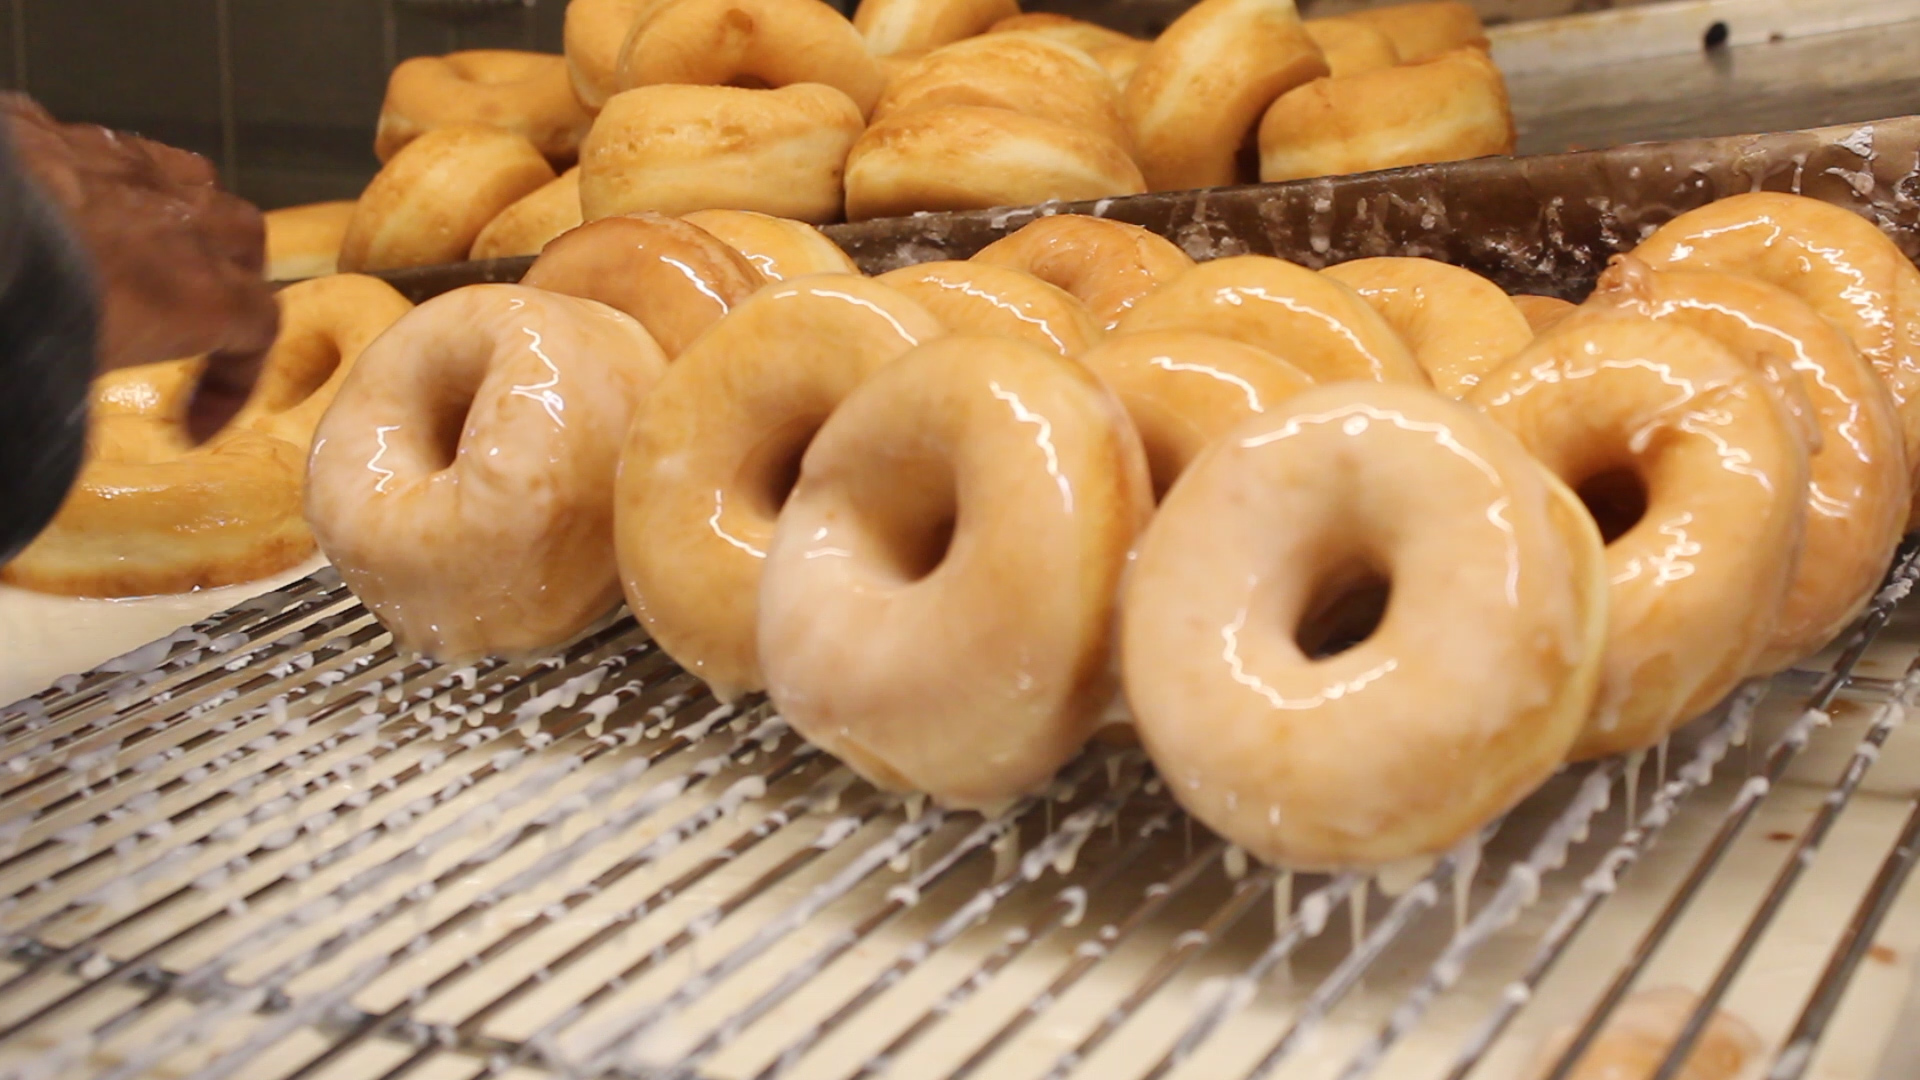 Baker's Pride donuts are made overnight every night beginning at midnight